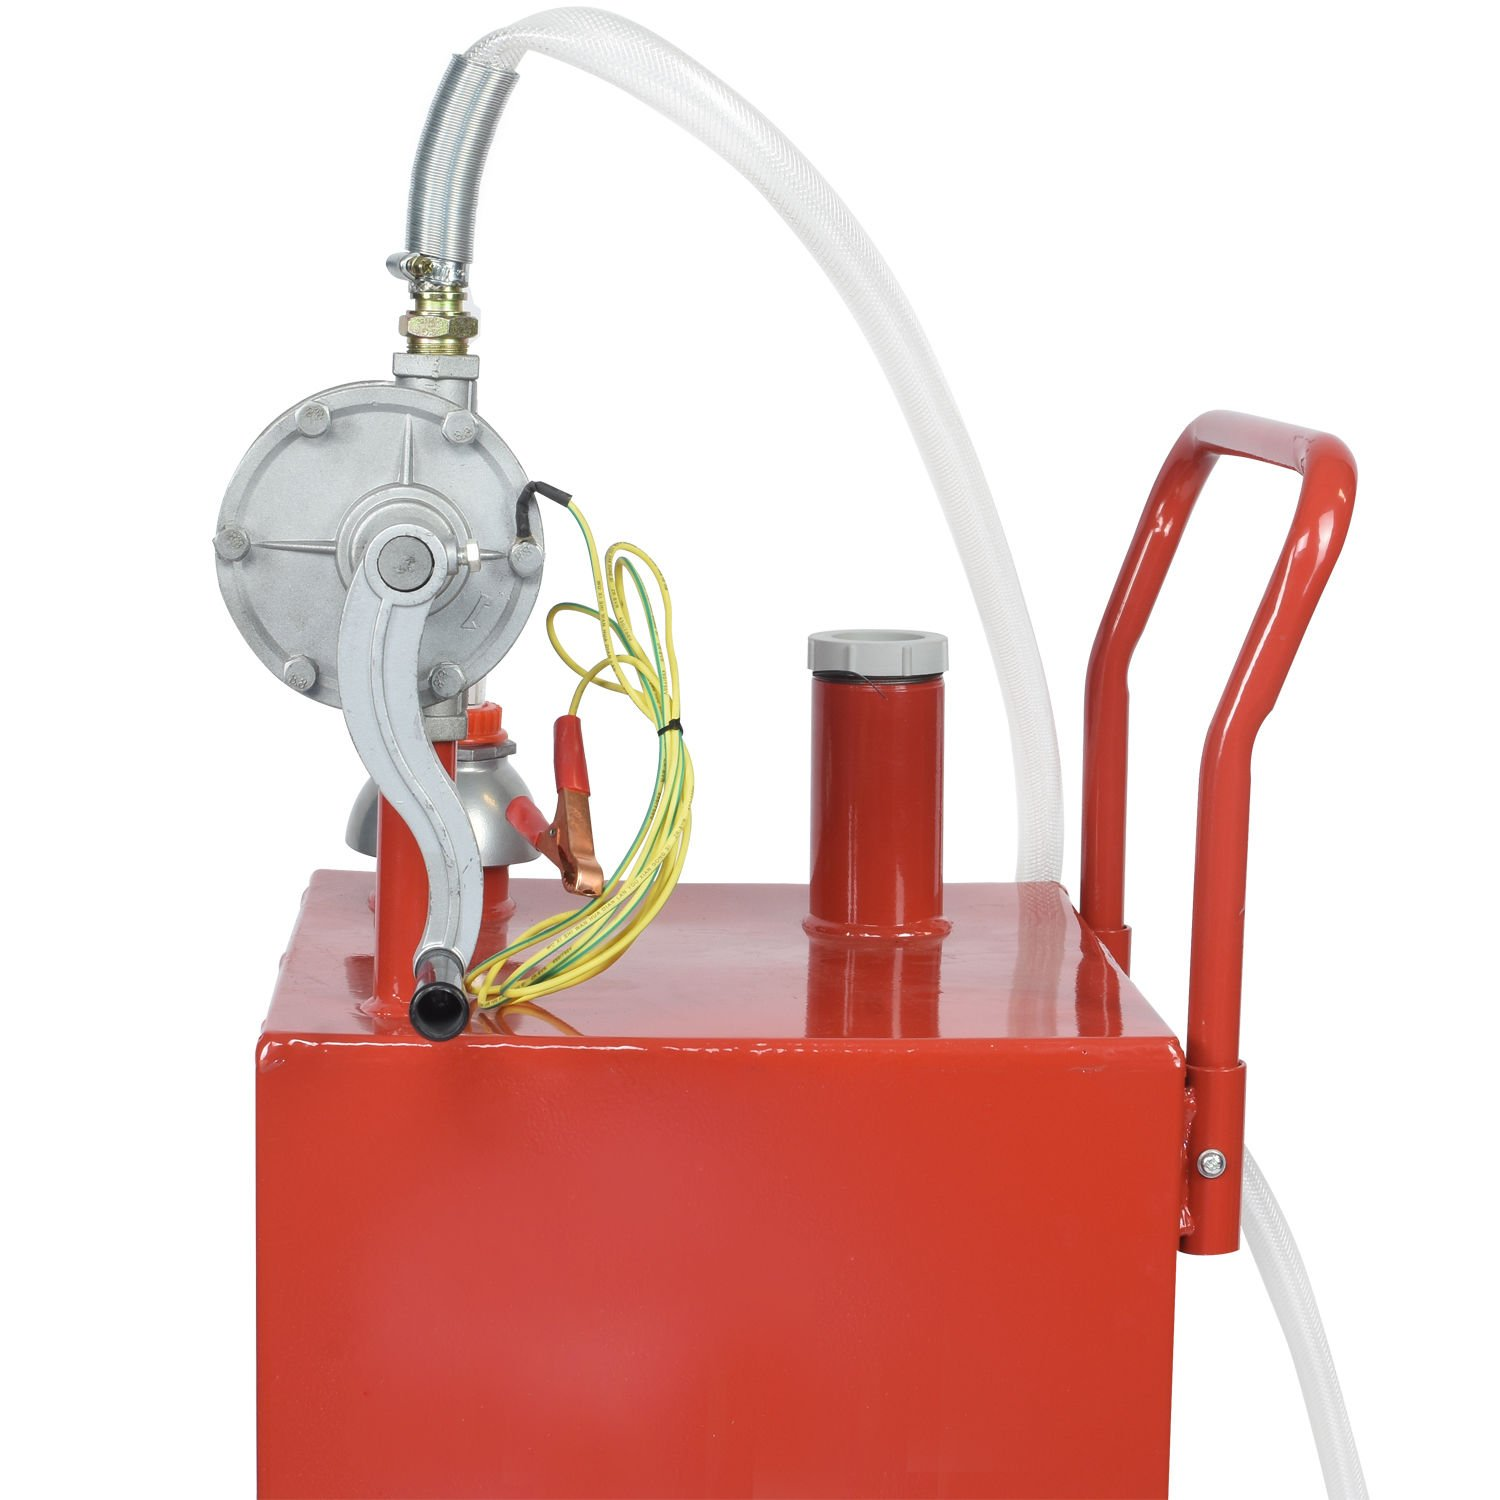 30 Gallon Gas Fuel Diesel Caddy Transfer Tank Container w/ Rotary Pump Tool by Wang Tong Shop (Image #4)